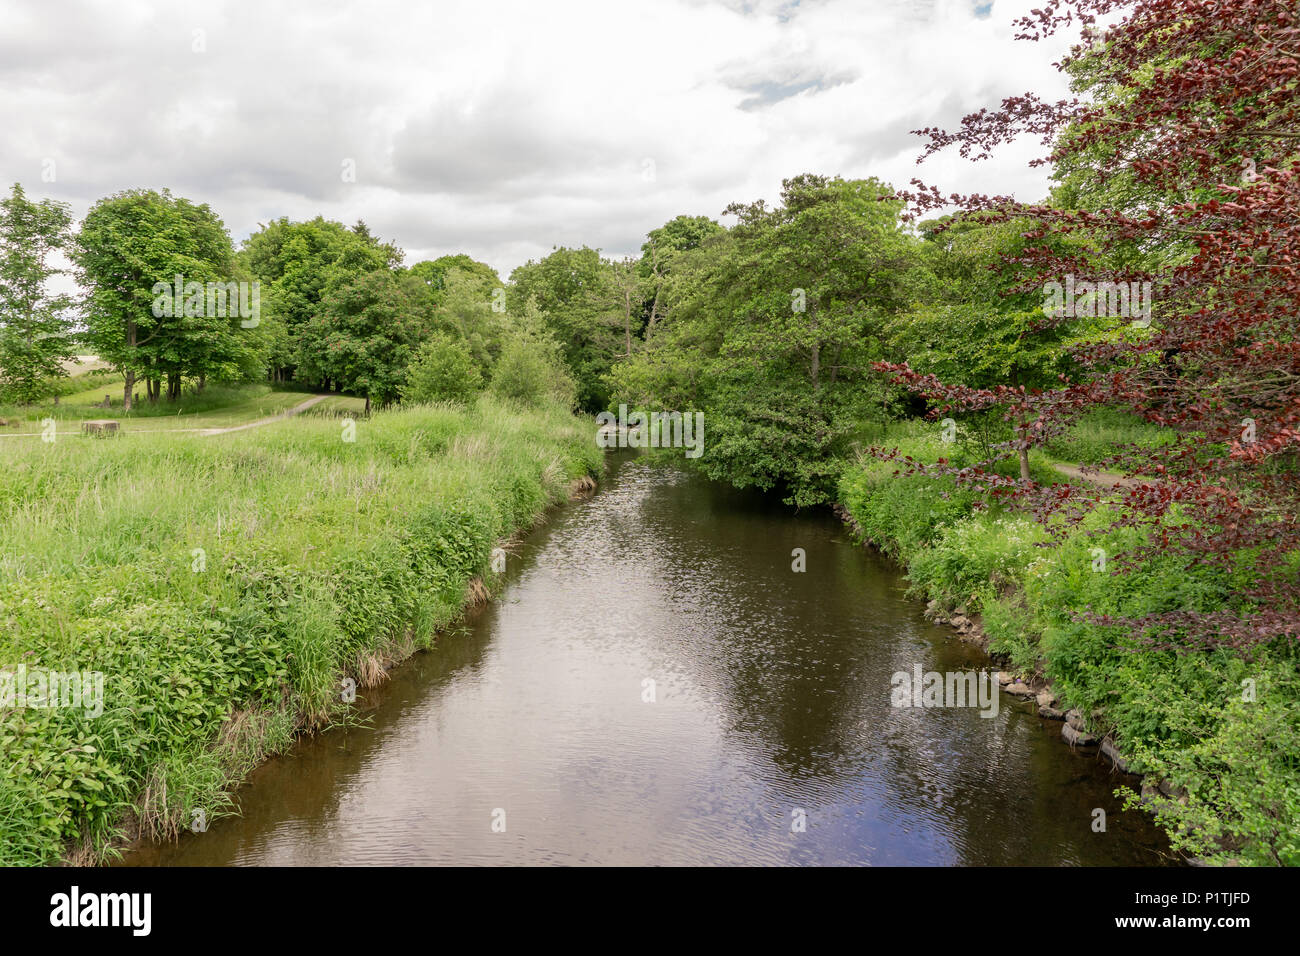 Gentle flowing Scottish Burn or river with reflections on the water. A good image that shows Scotlands countryside in summer. - Stock Image